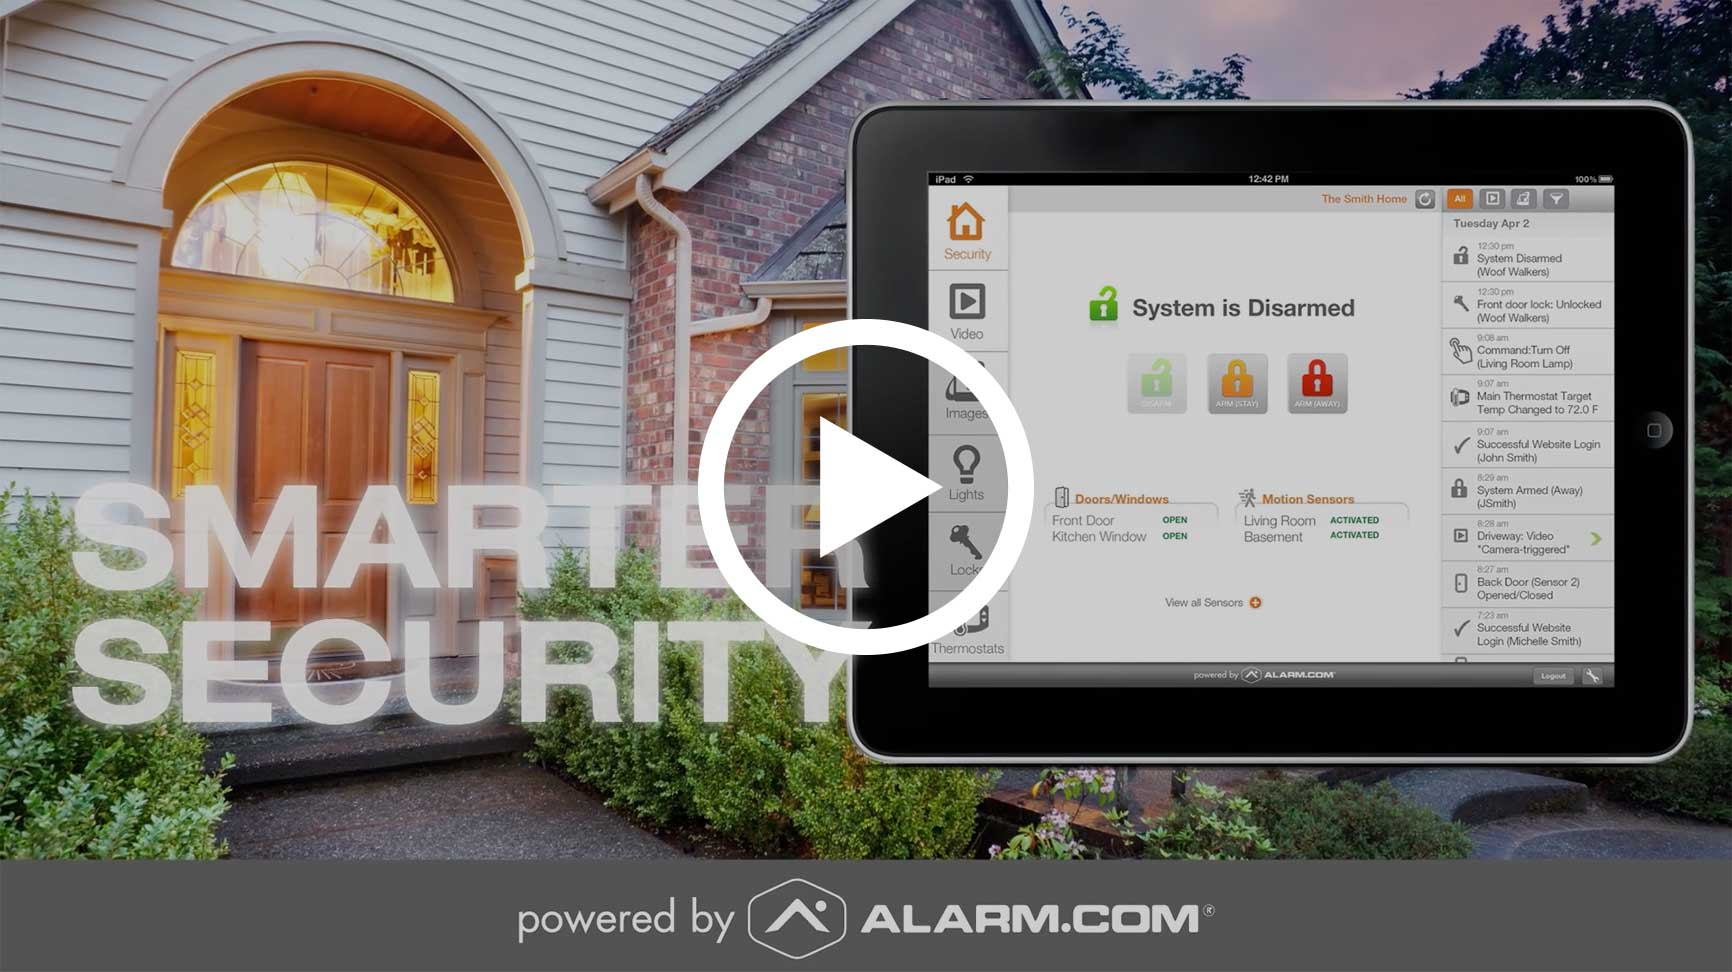 Image of Alarm.com services video.